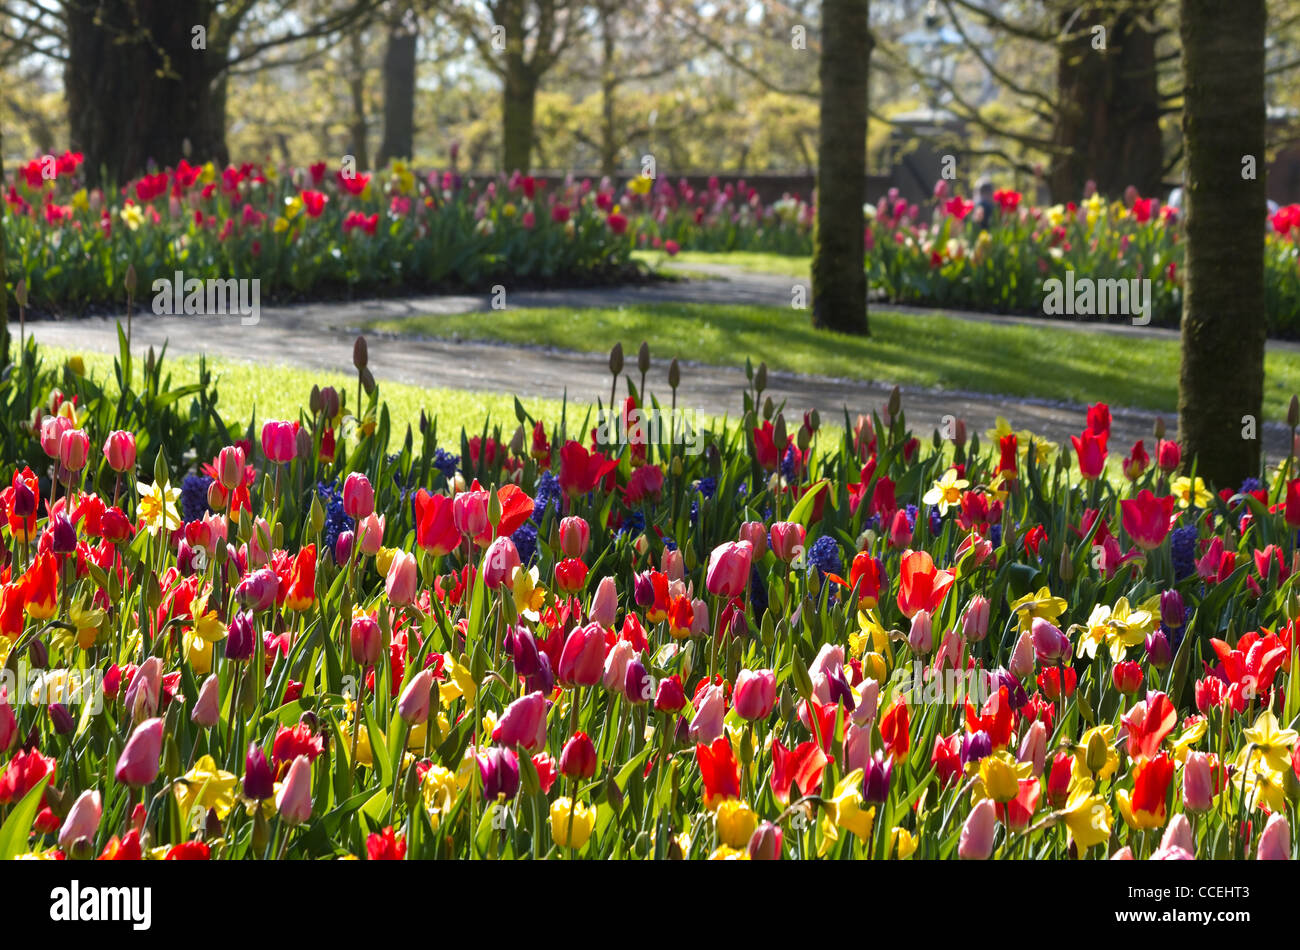 Colorful spring garden with tulips and daffodils on early morning in april - horozontal image - Stock Image